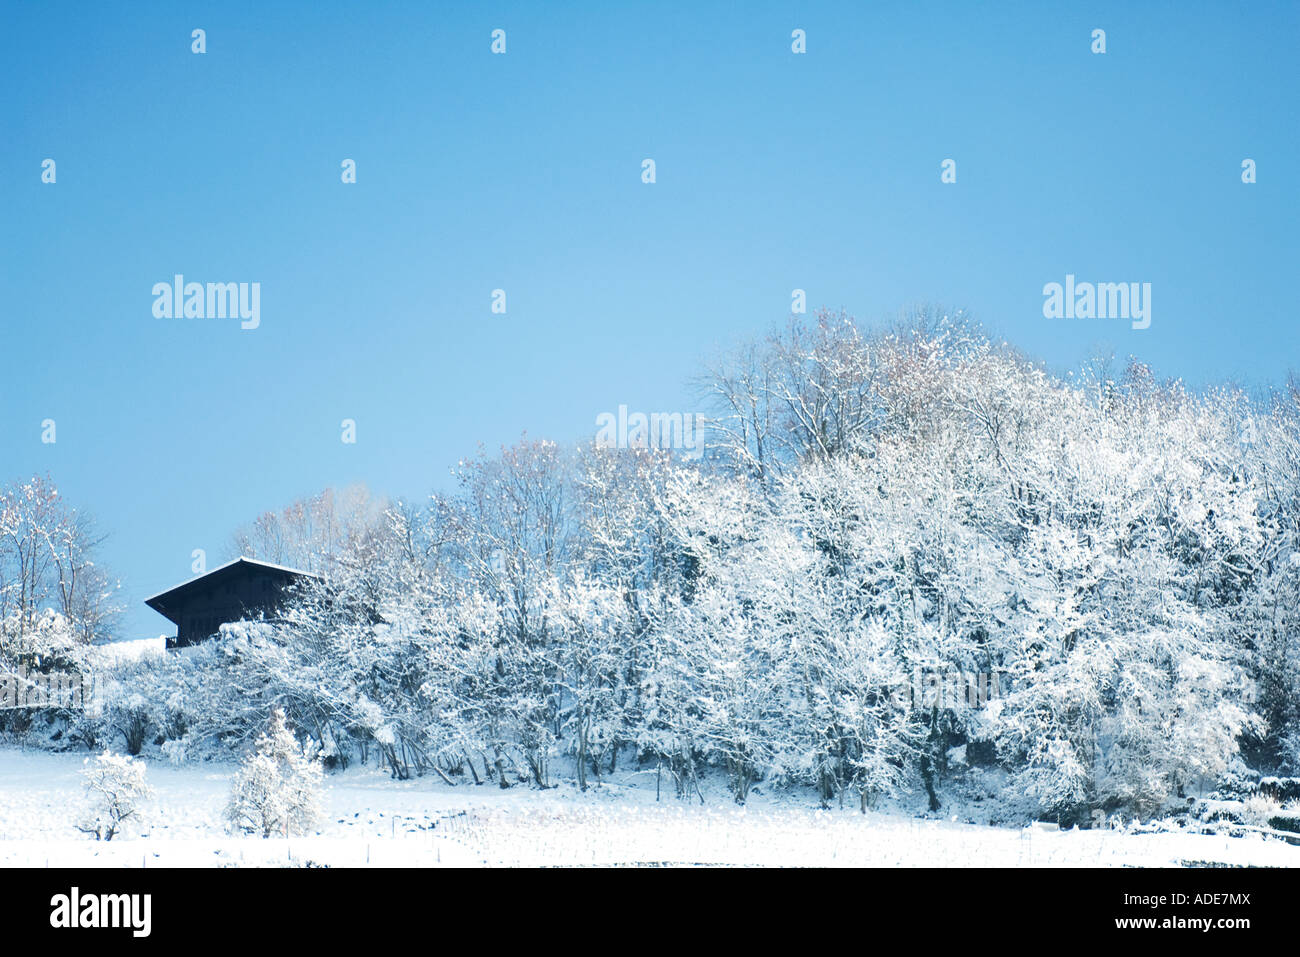 Winter landscape with chalet - Stock Image